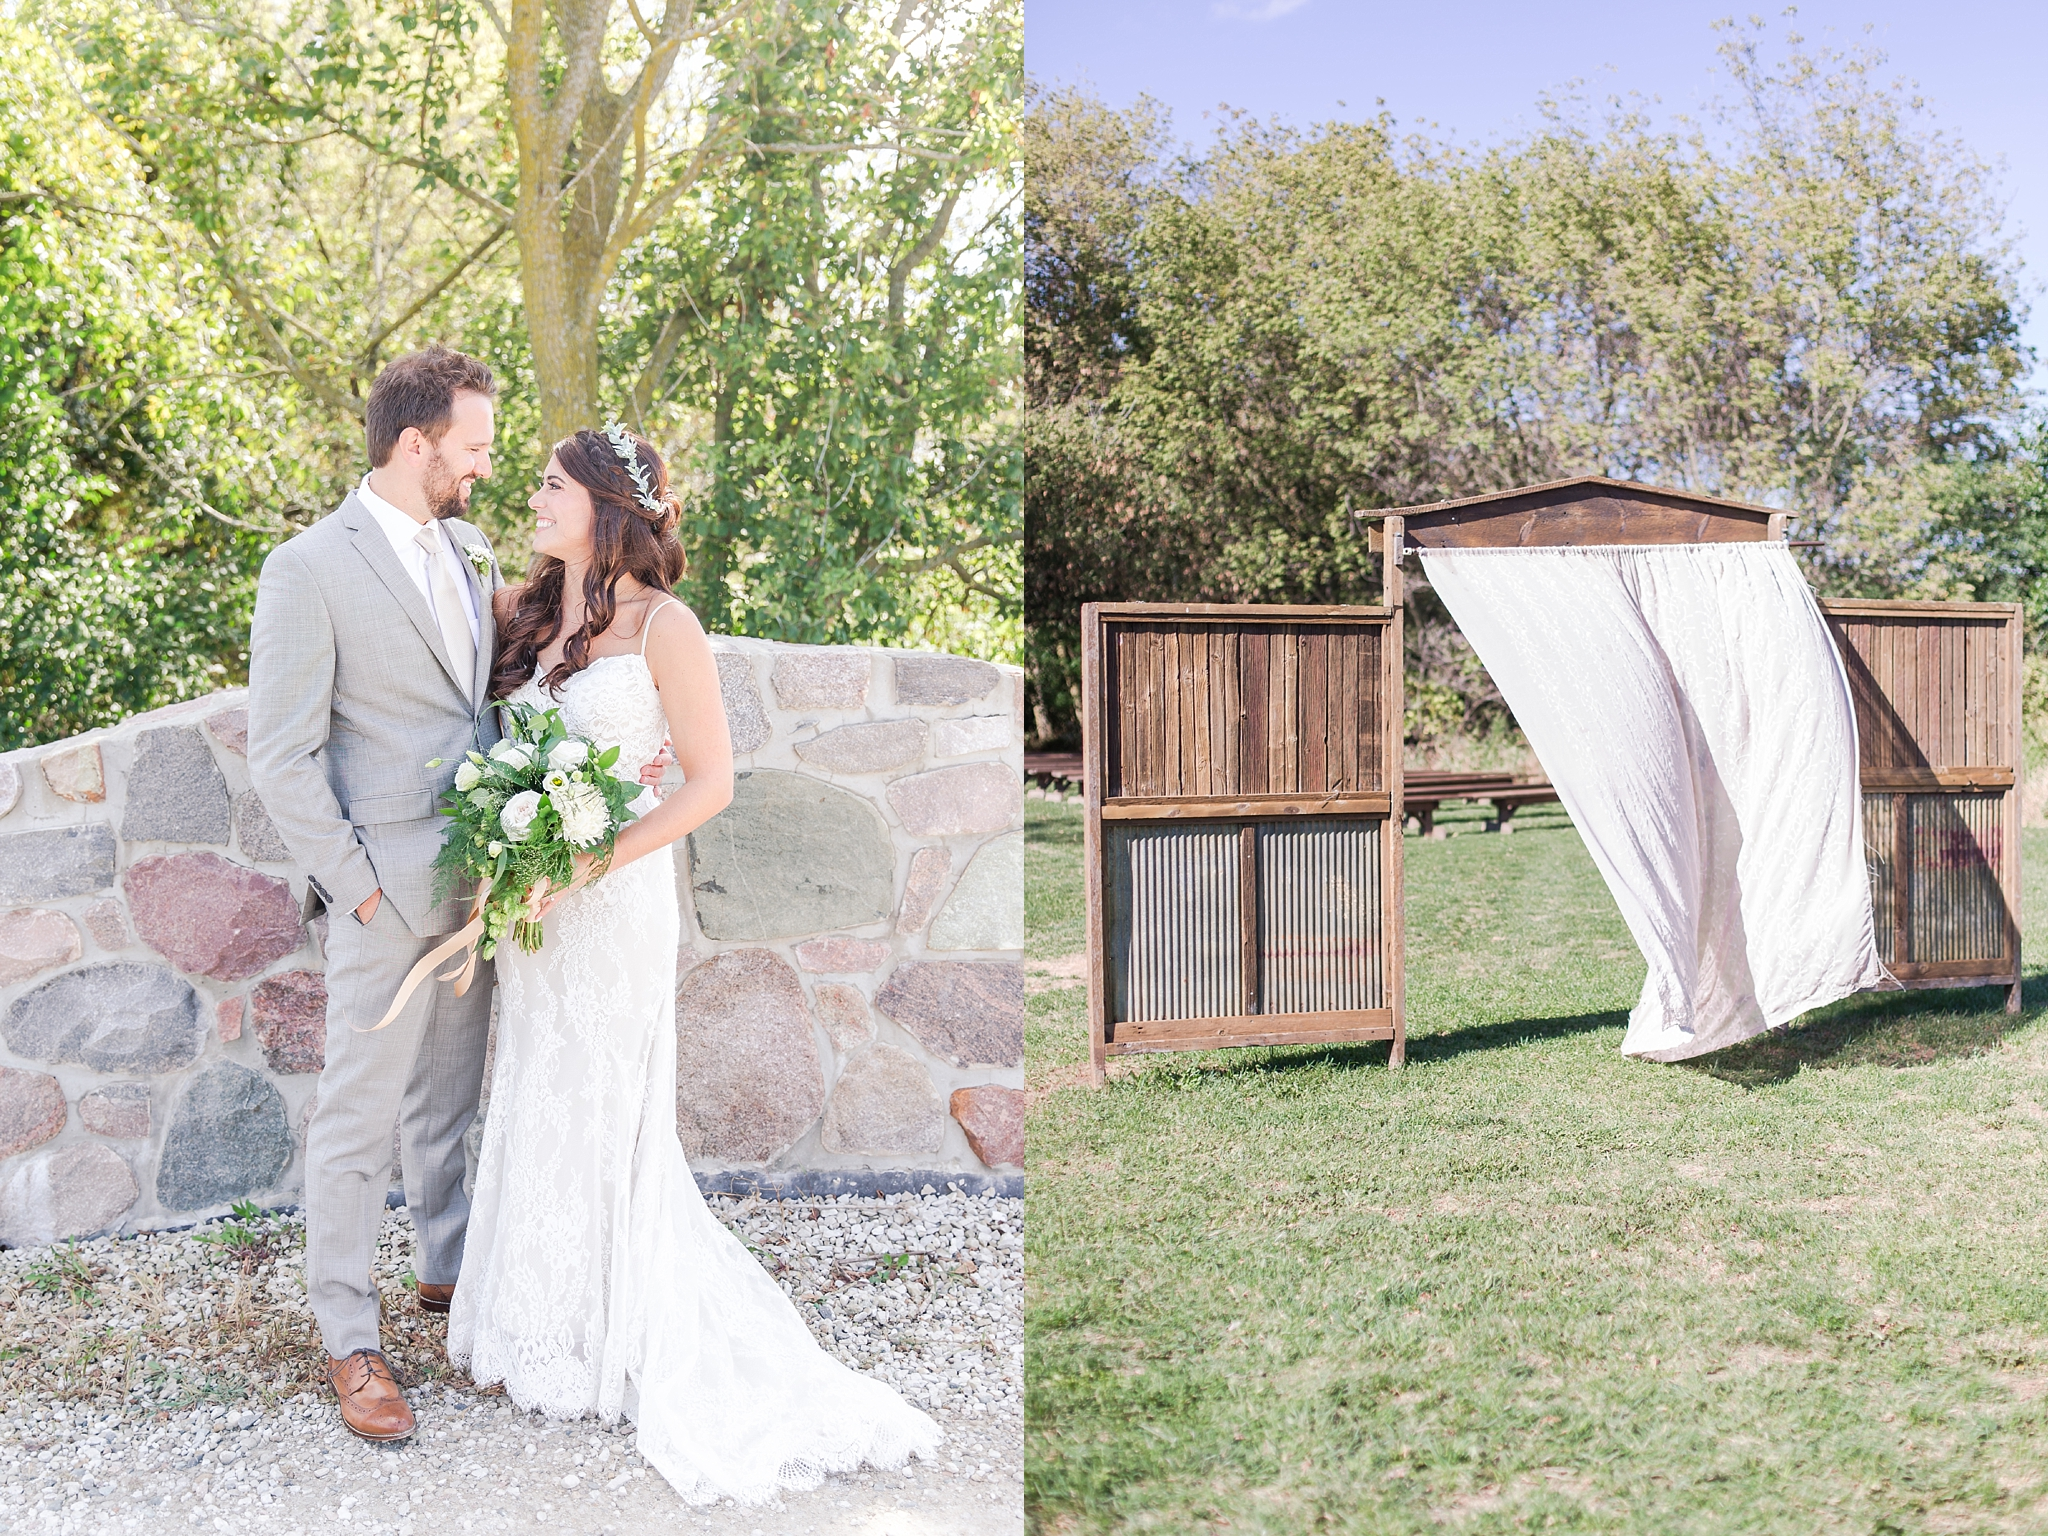 natural-rustic-wedding-photos-at-frutig-farms-the-valley-in-ann-arbor-michigan-by-courtney-carolyn-photography_0046.jpg